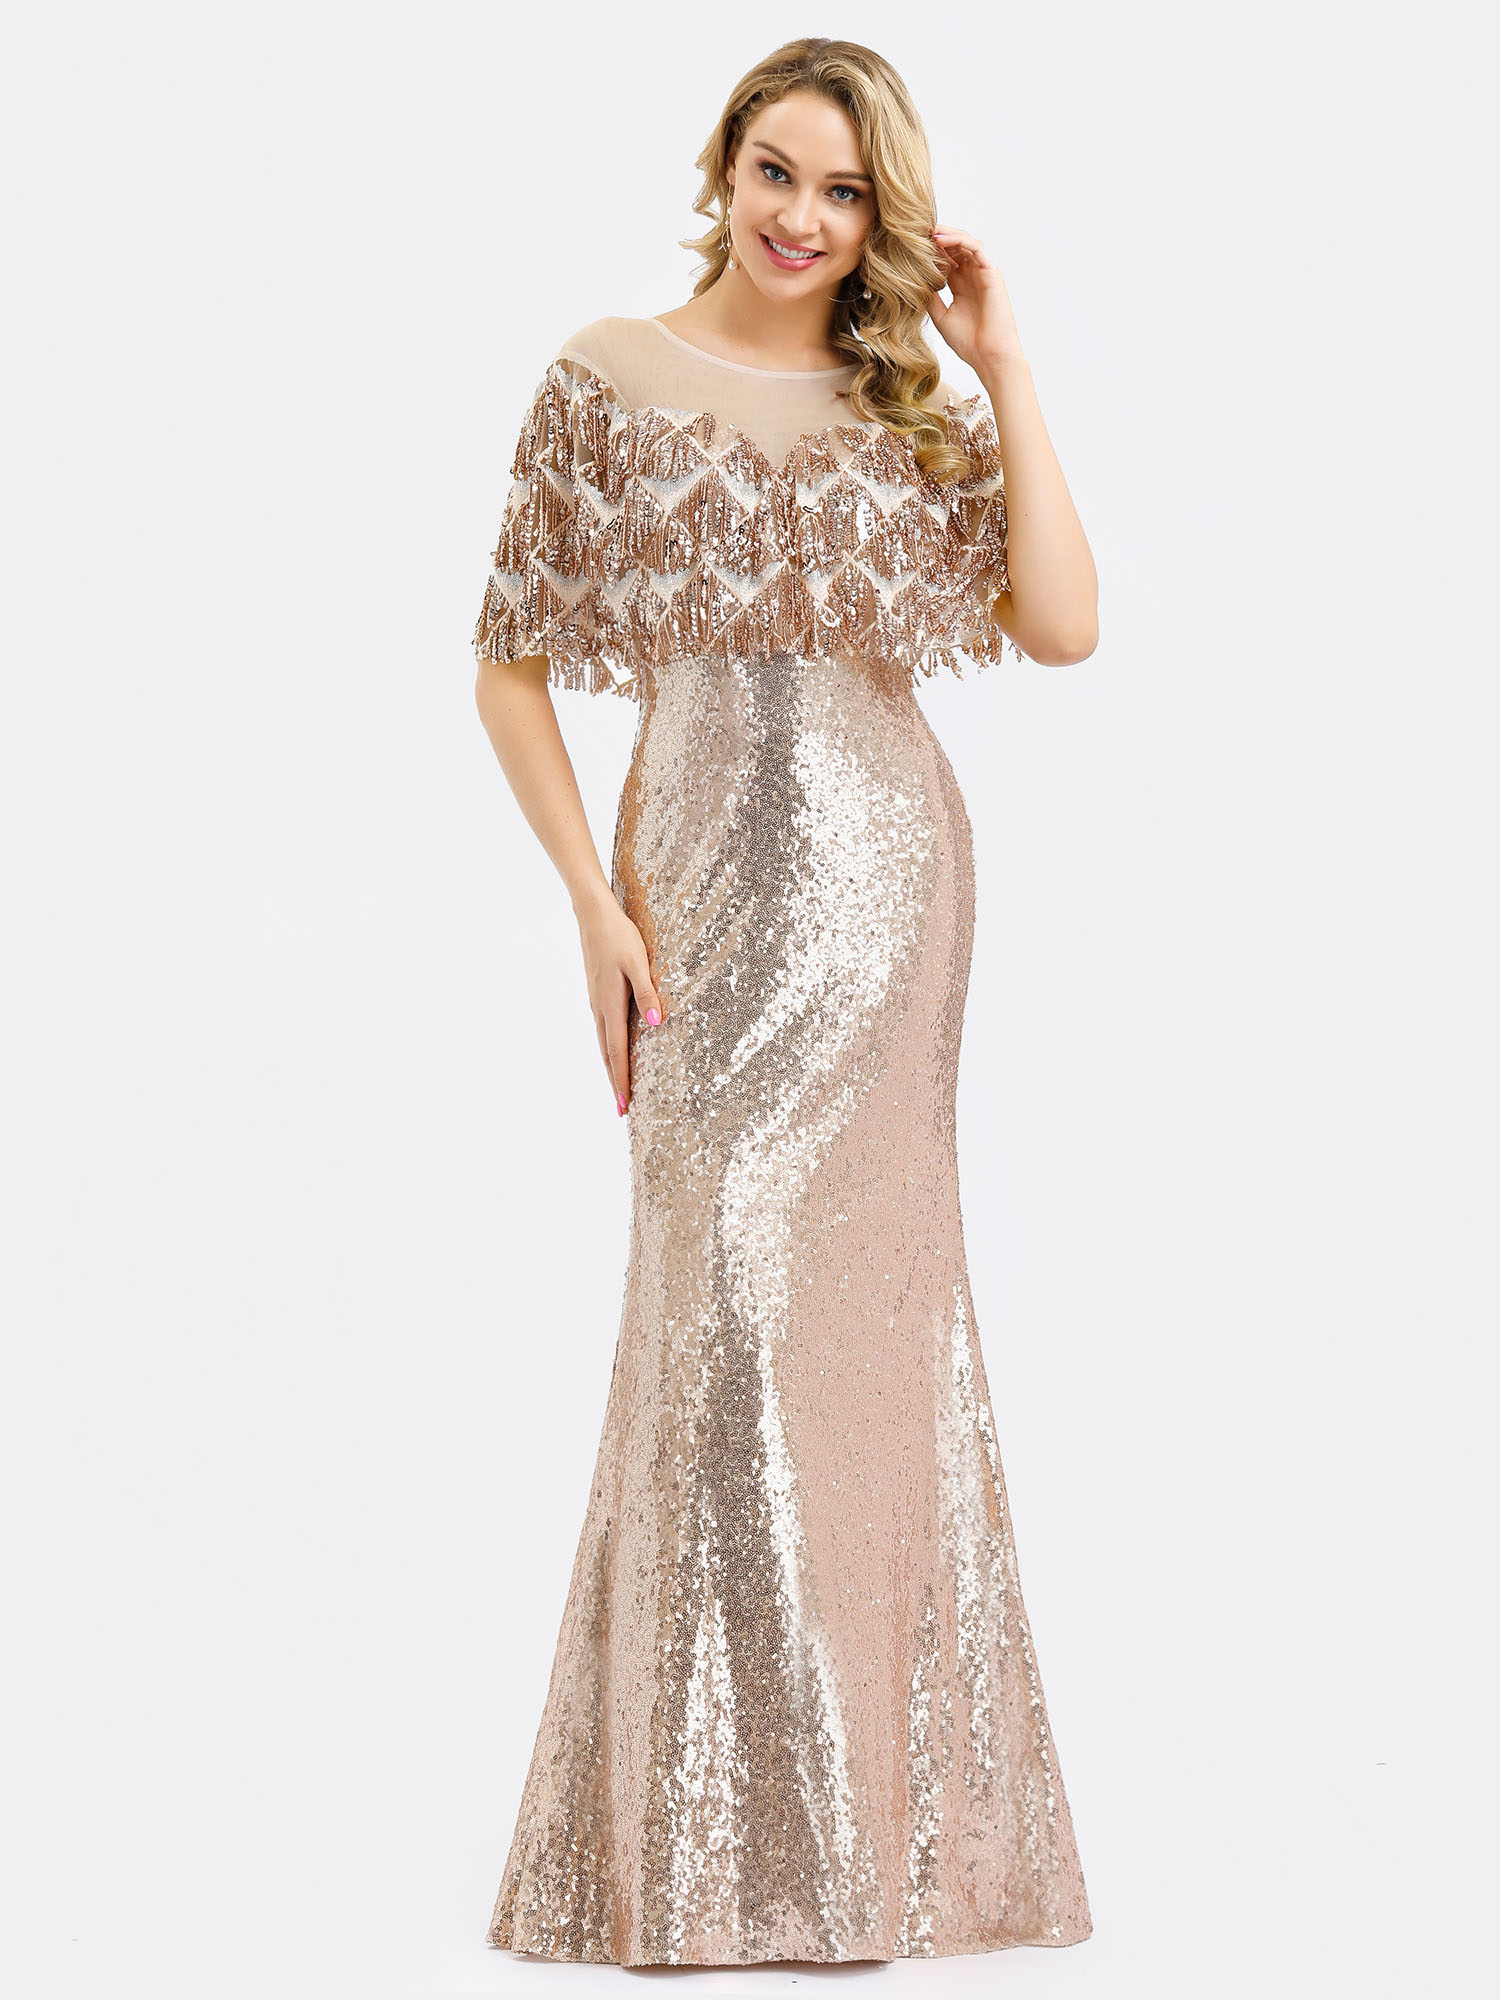 Ever-pretty-Formal-Celebrity-Party-Dresses-Mermaid-Evening-Cocktail-Prom-Gowns thumbnail 7